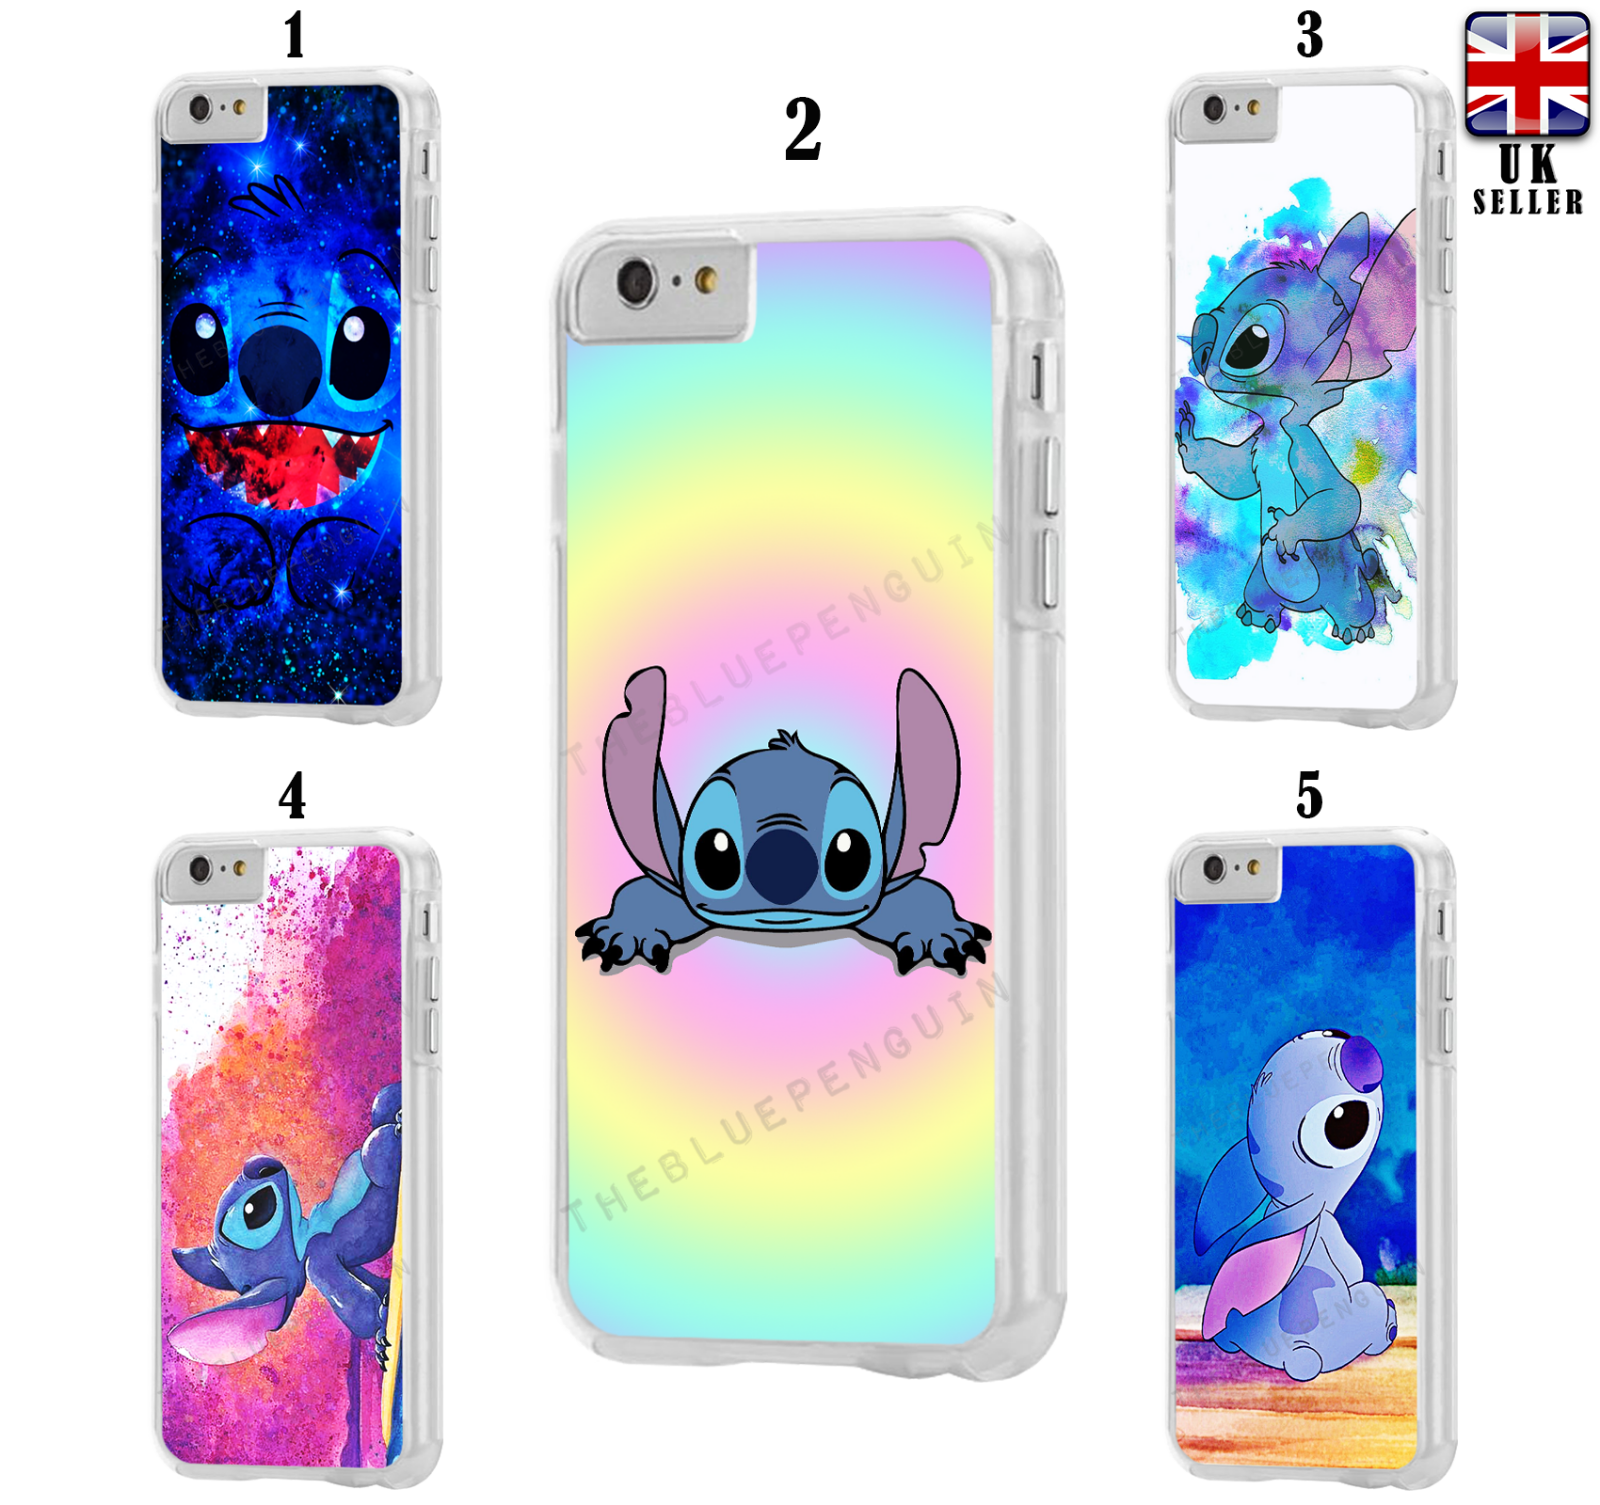 Disney Lilo Stitch Cartoon Case For Apple Ipod Touch 5th 6th 7th Generation Ebay